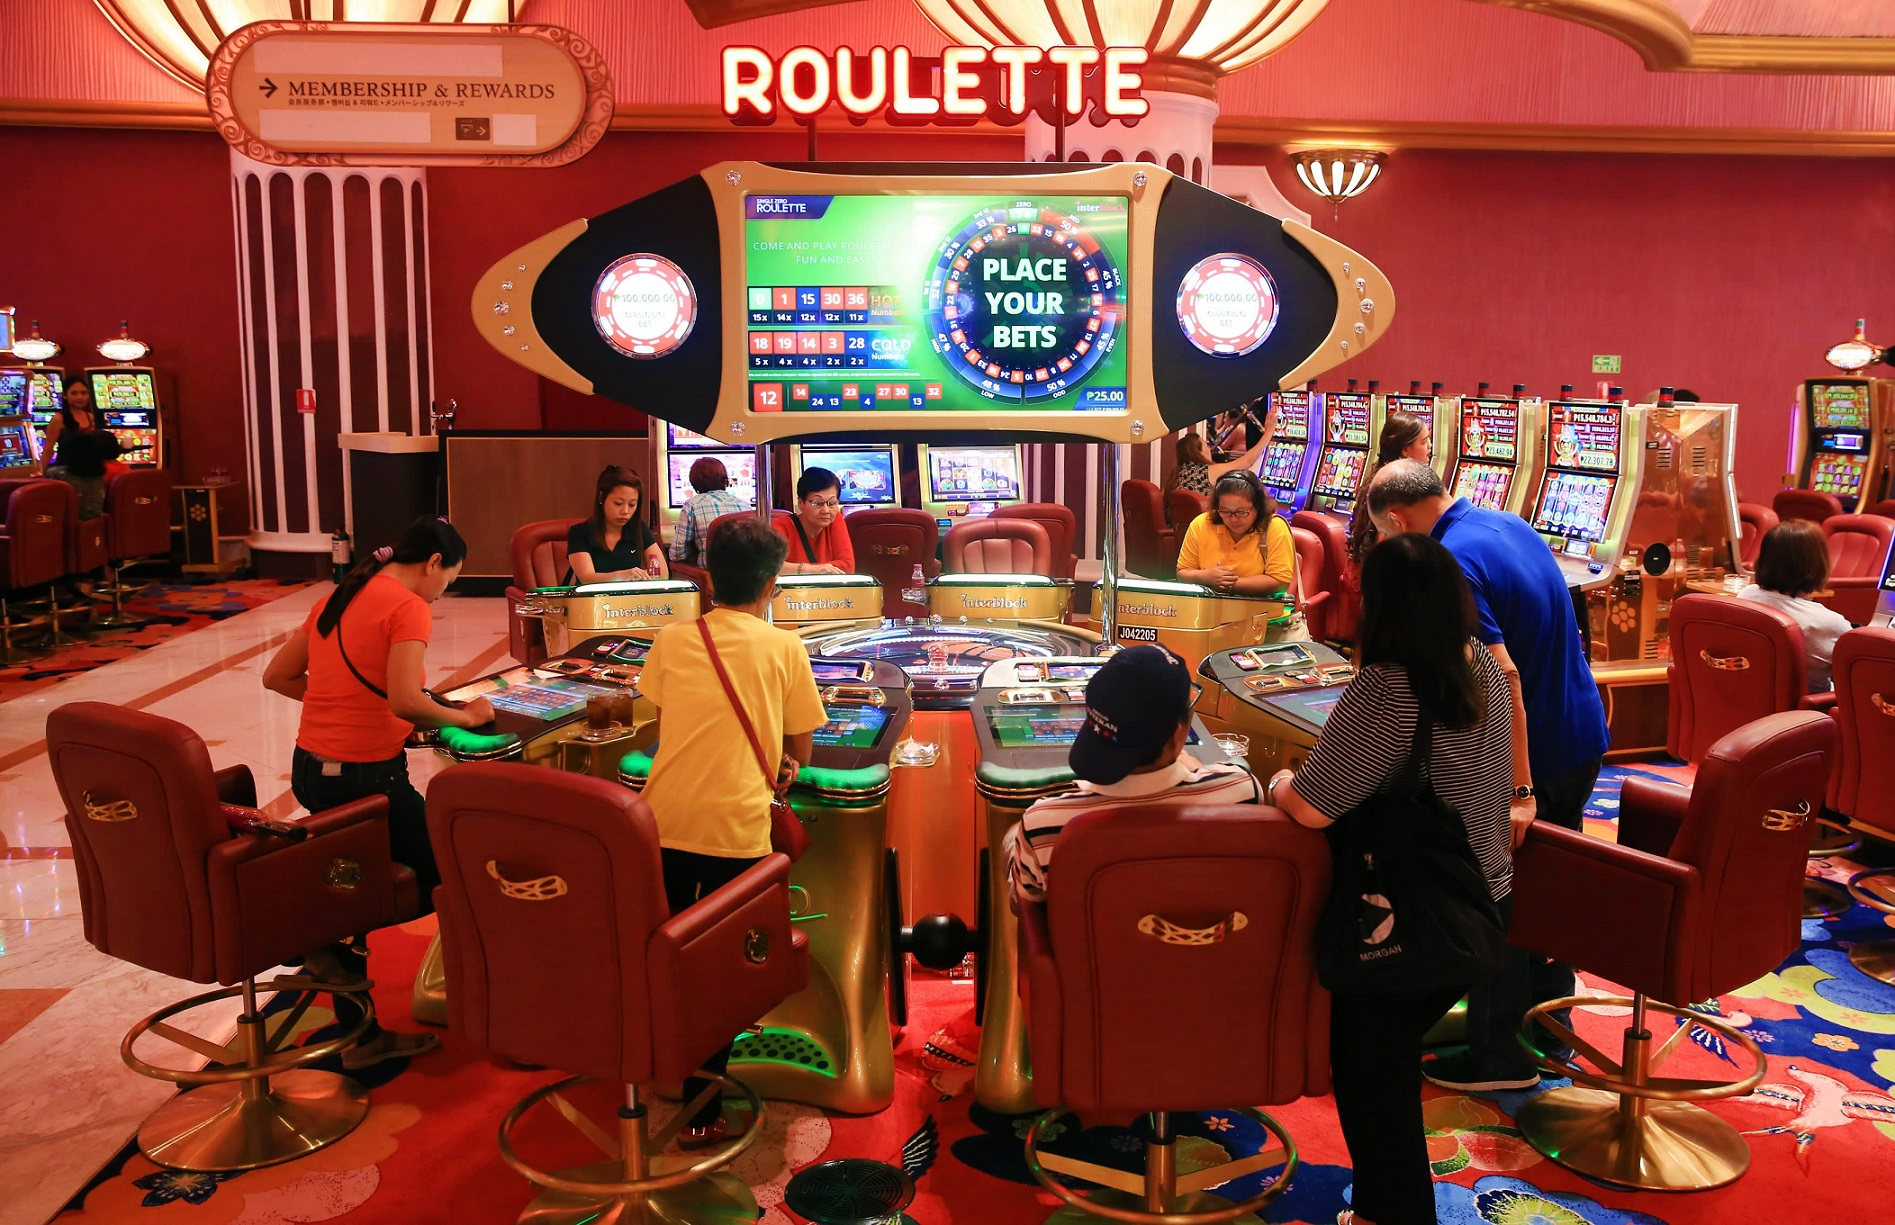 Worthwhile To Ask About Online Casino